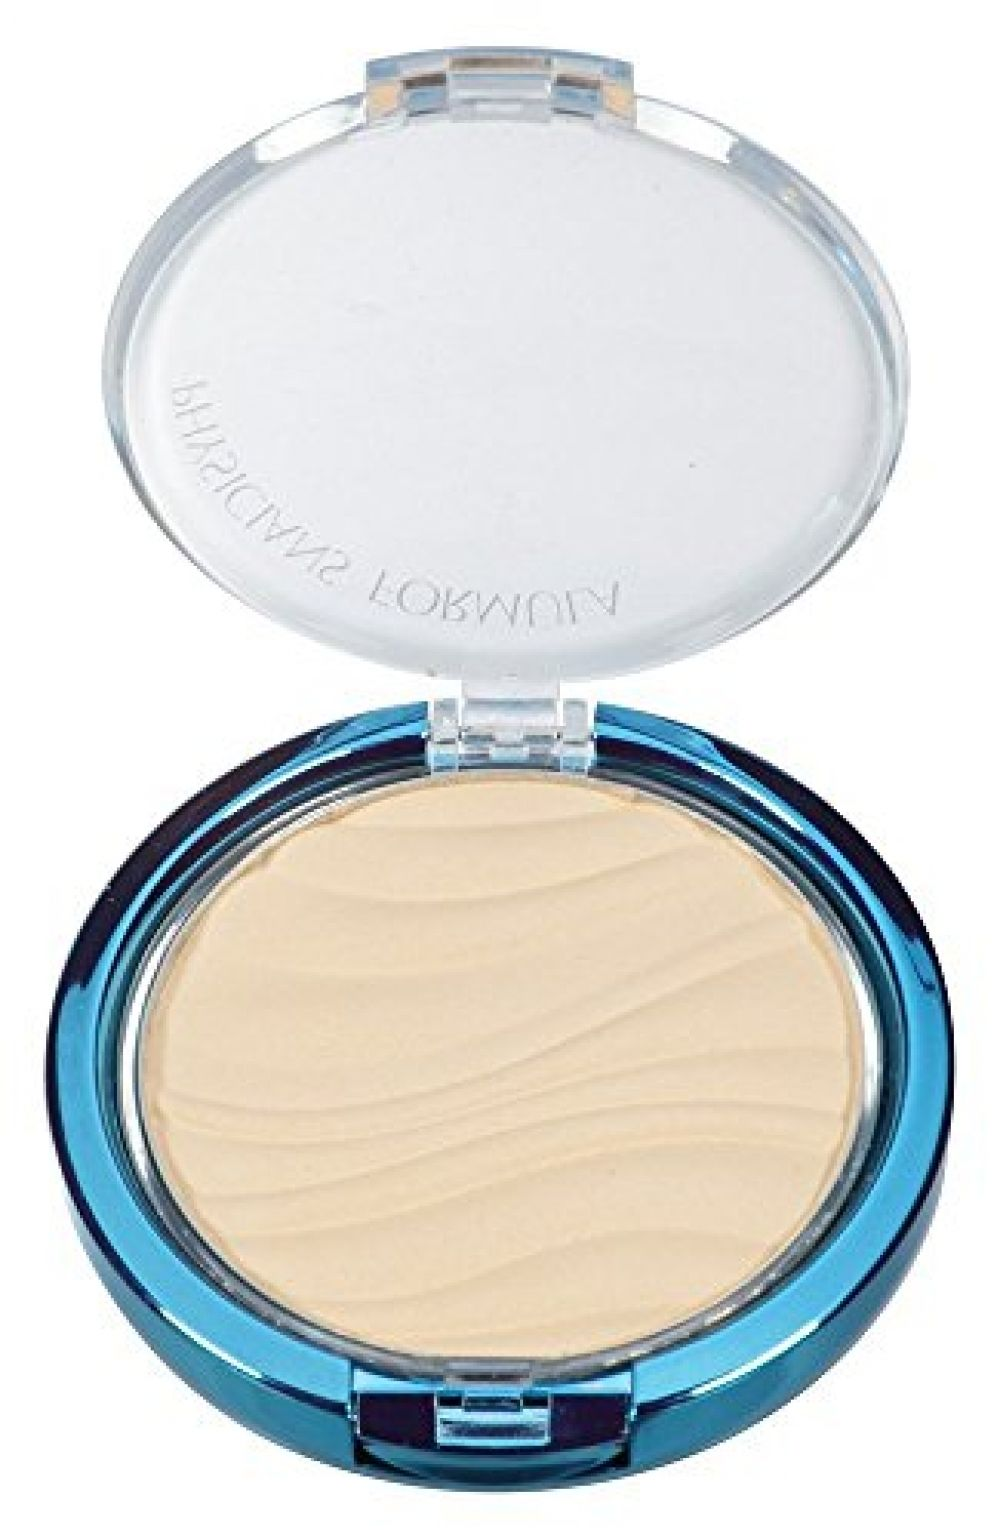 Physicians Formula Mineral Wear TalcFree Pressed Powder